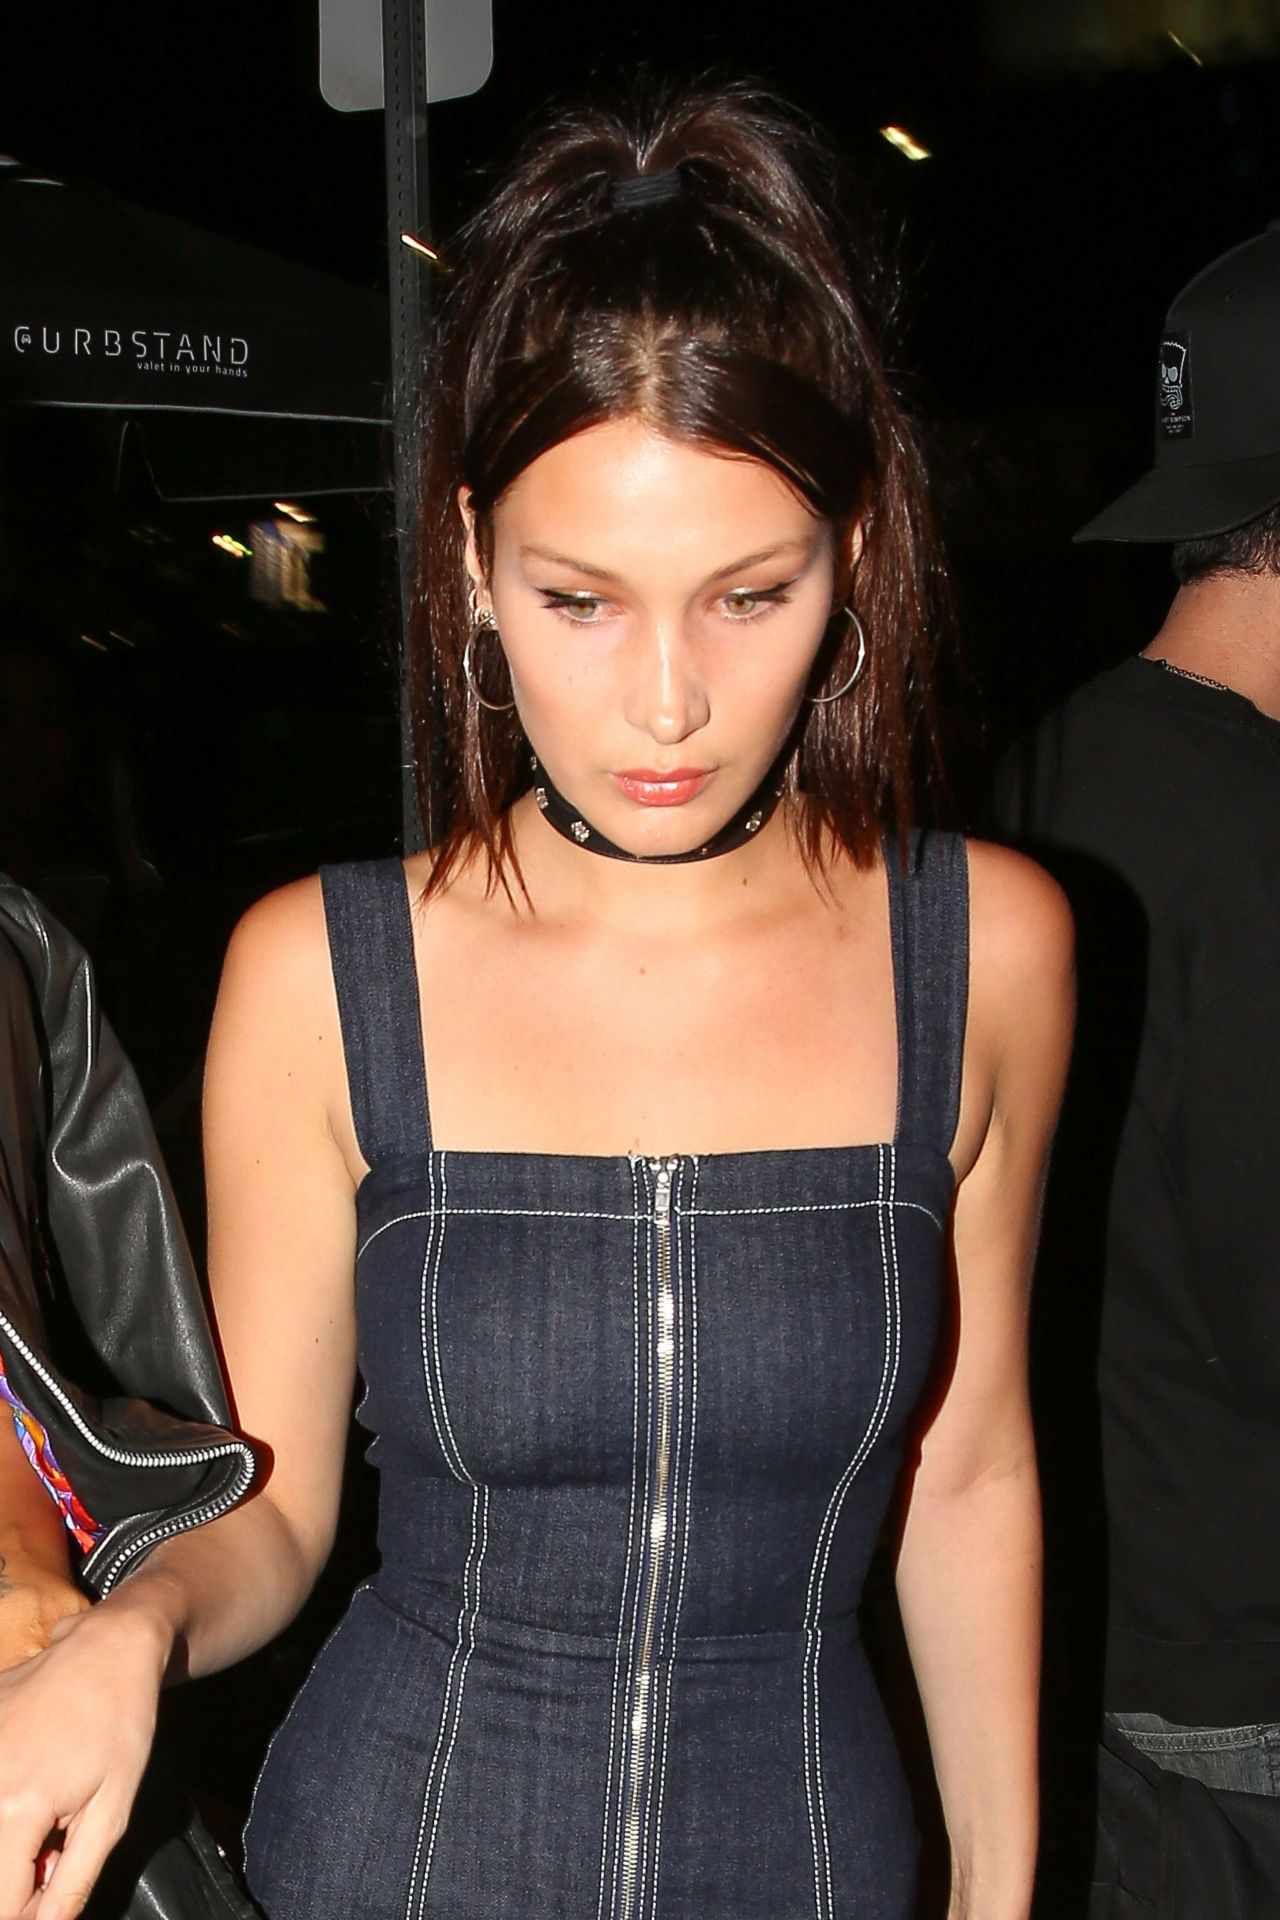 bella hadid night out style west hollywood 4202016